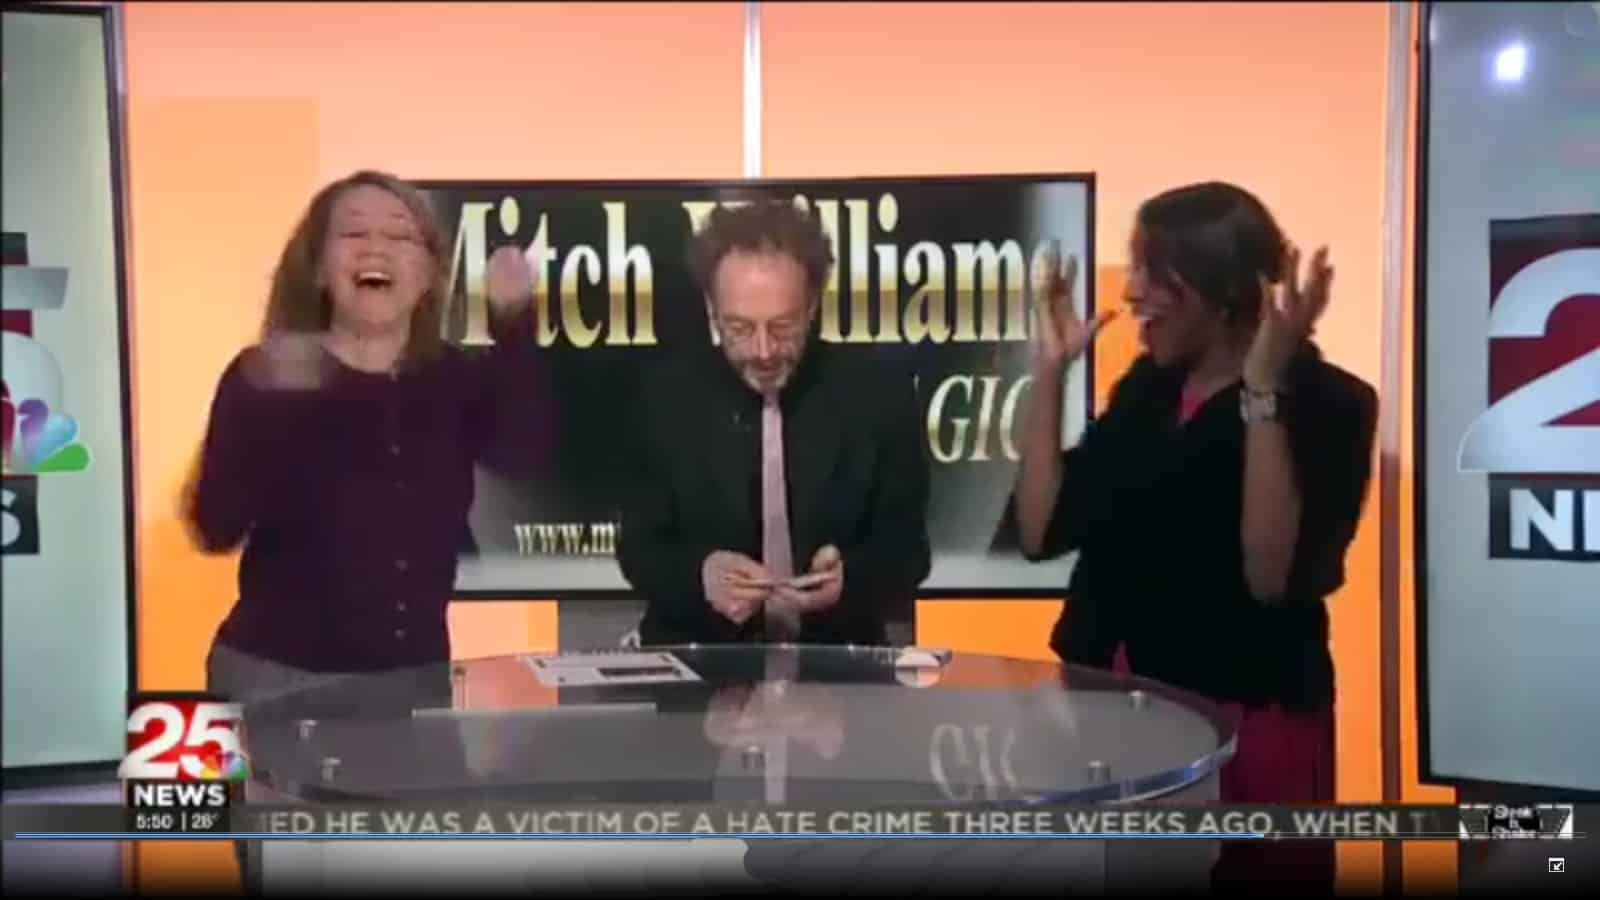 Magician Mitch Williams - wows on television